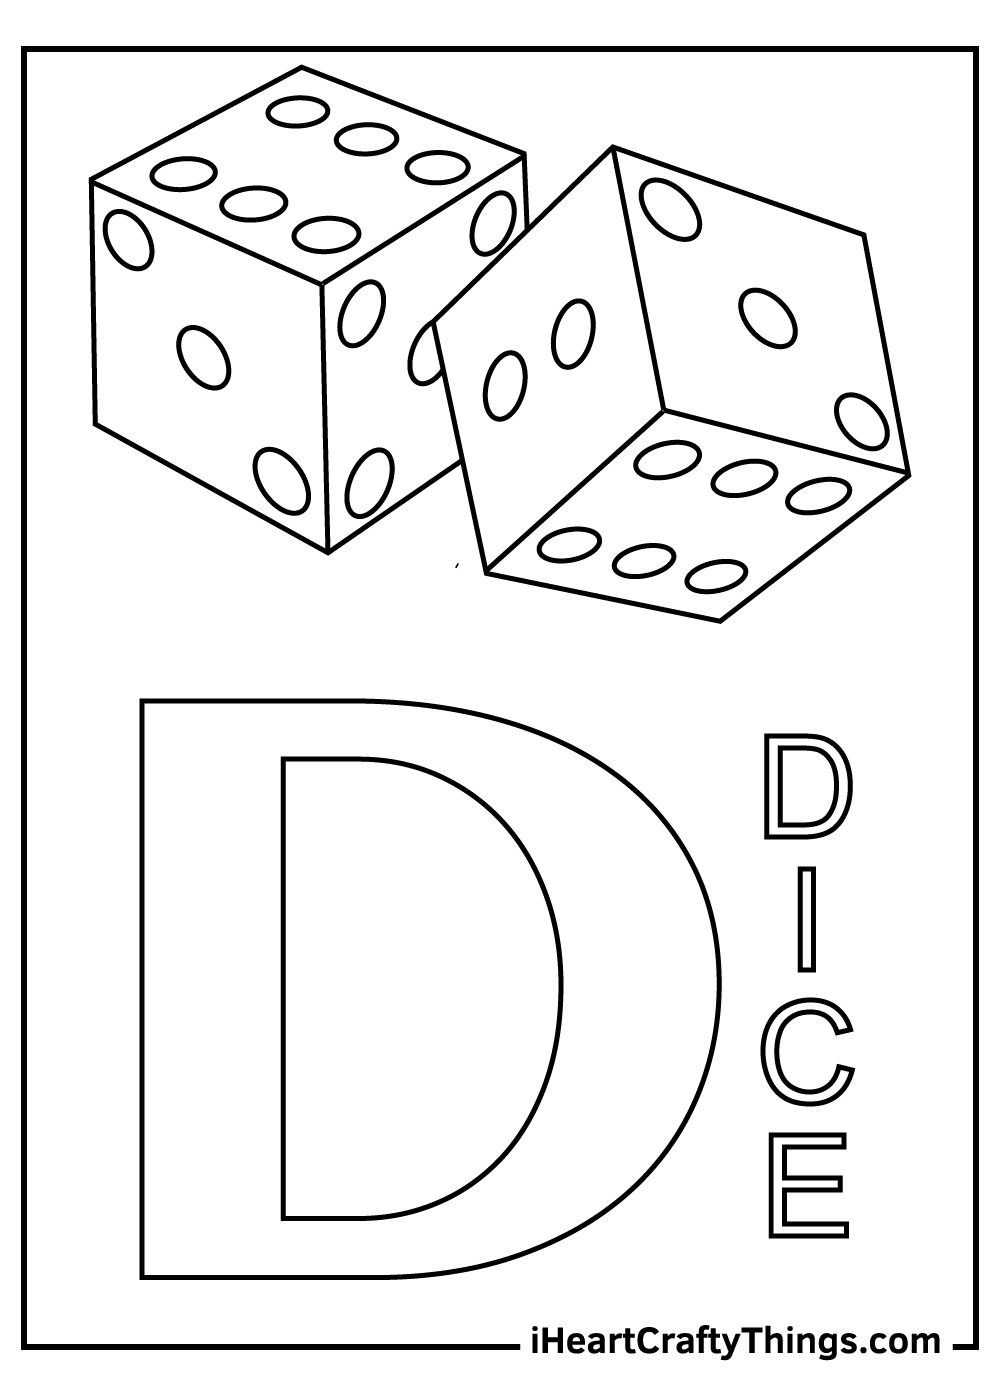 d is for dice coloring pages free printables